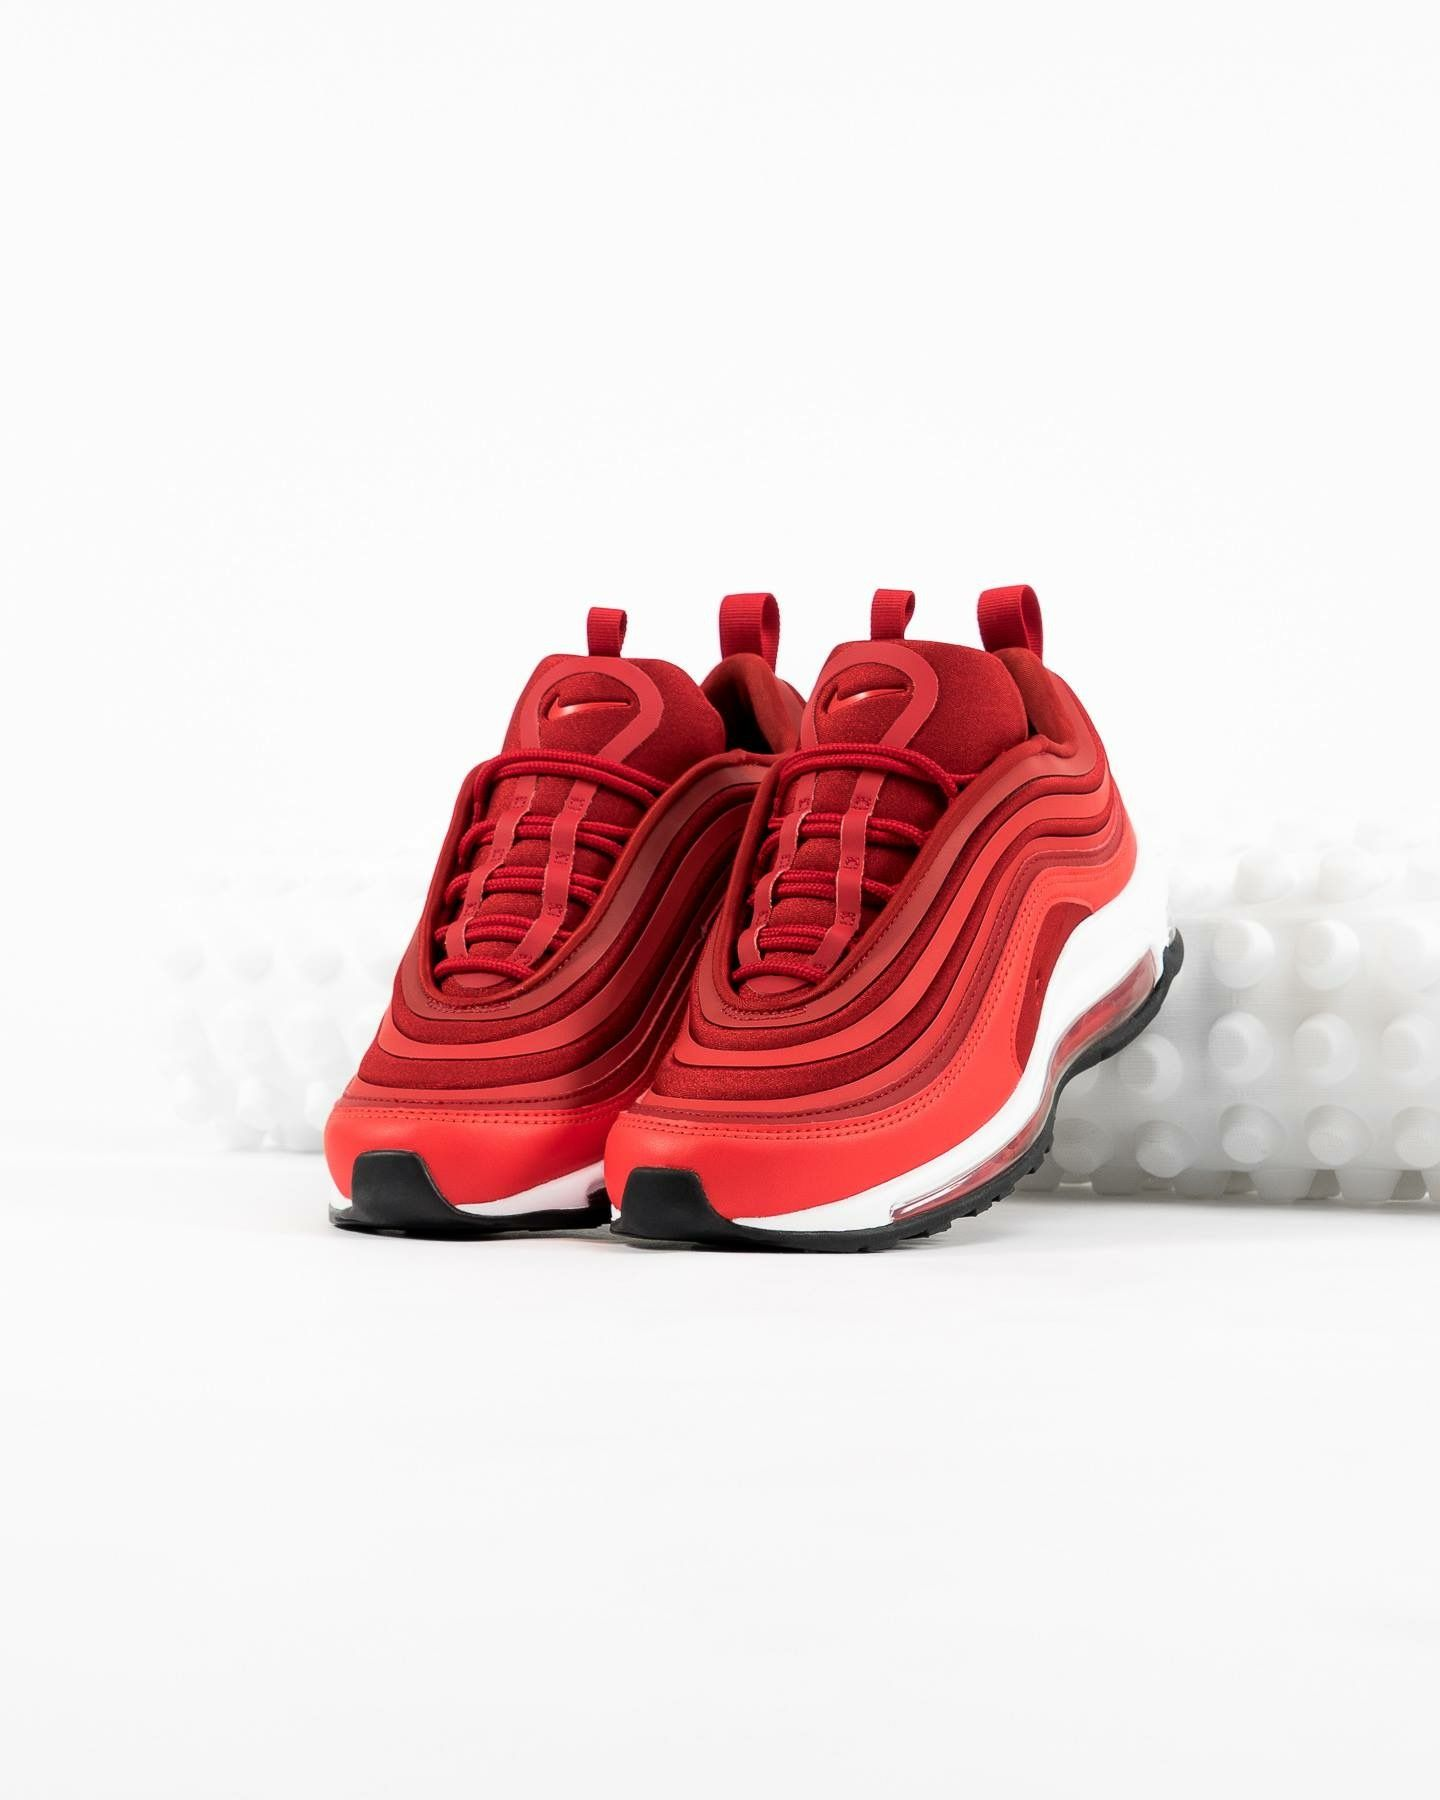 new style efcb3 90ba0 Nike Air Max 97 Ultra  Red